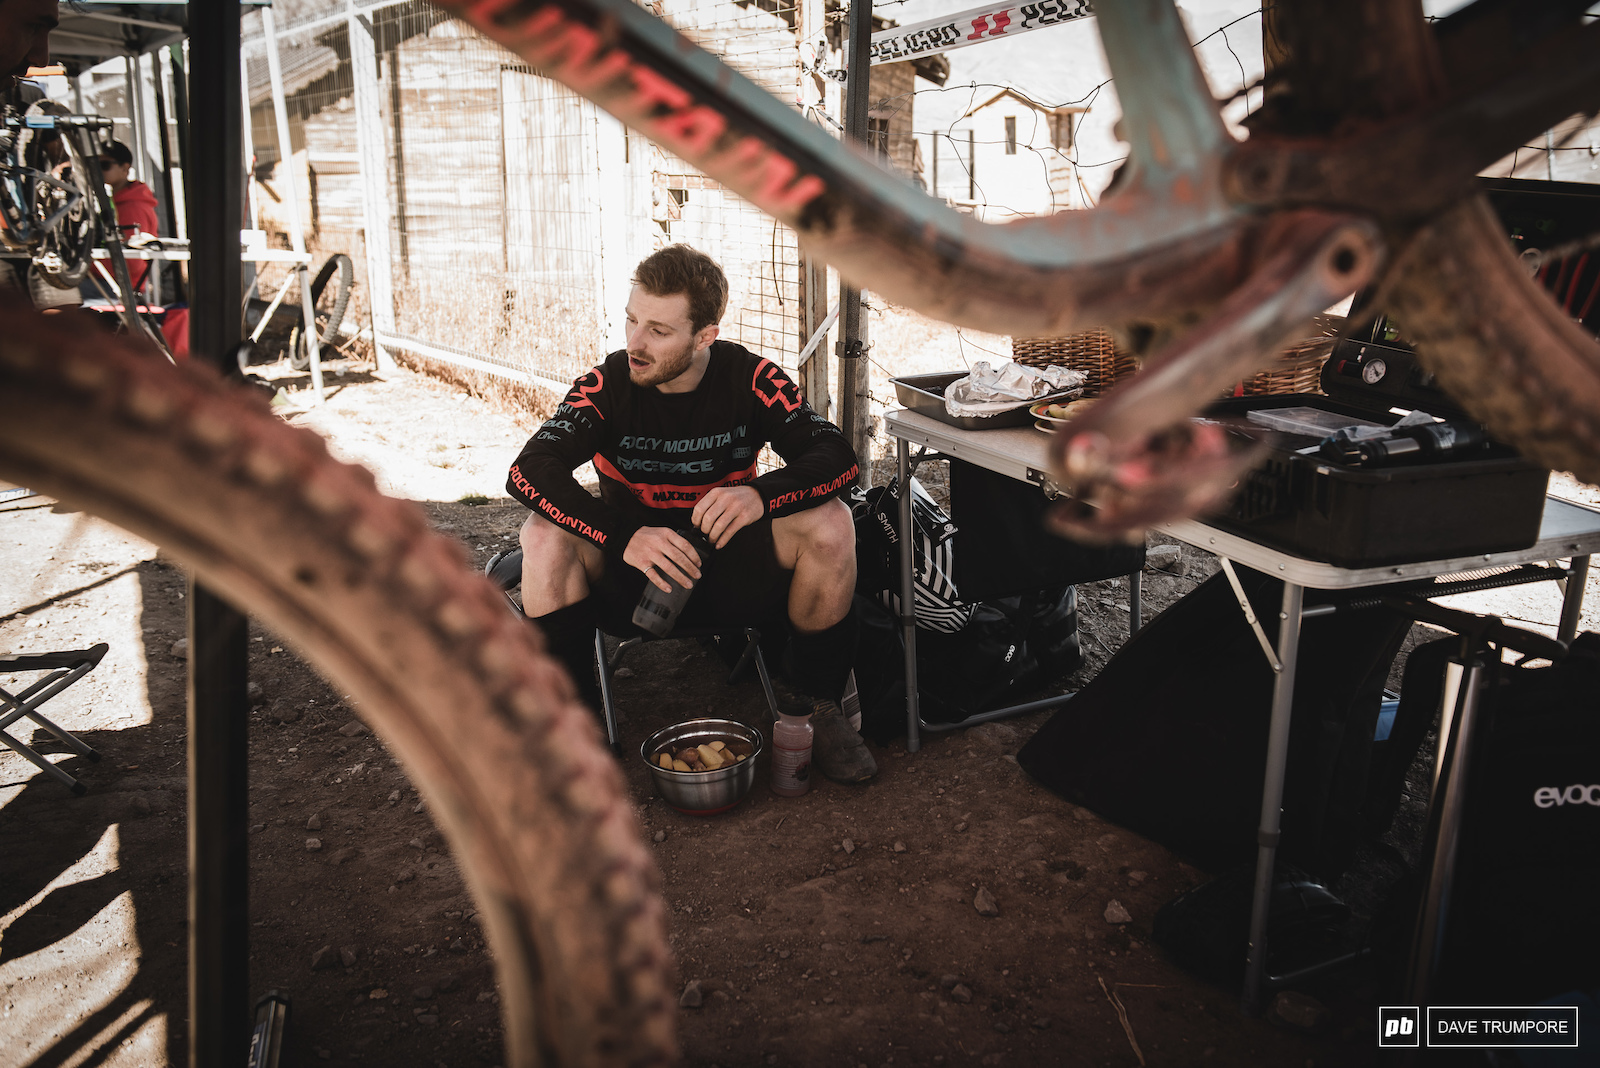 Jesse Melamed carbs up after stage 2 with a bucket of potatoes.